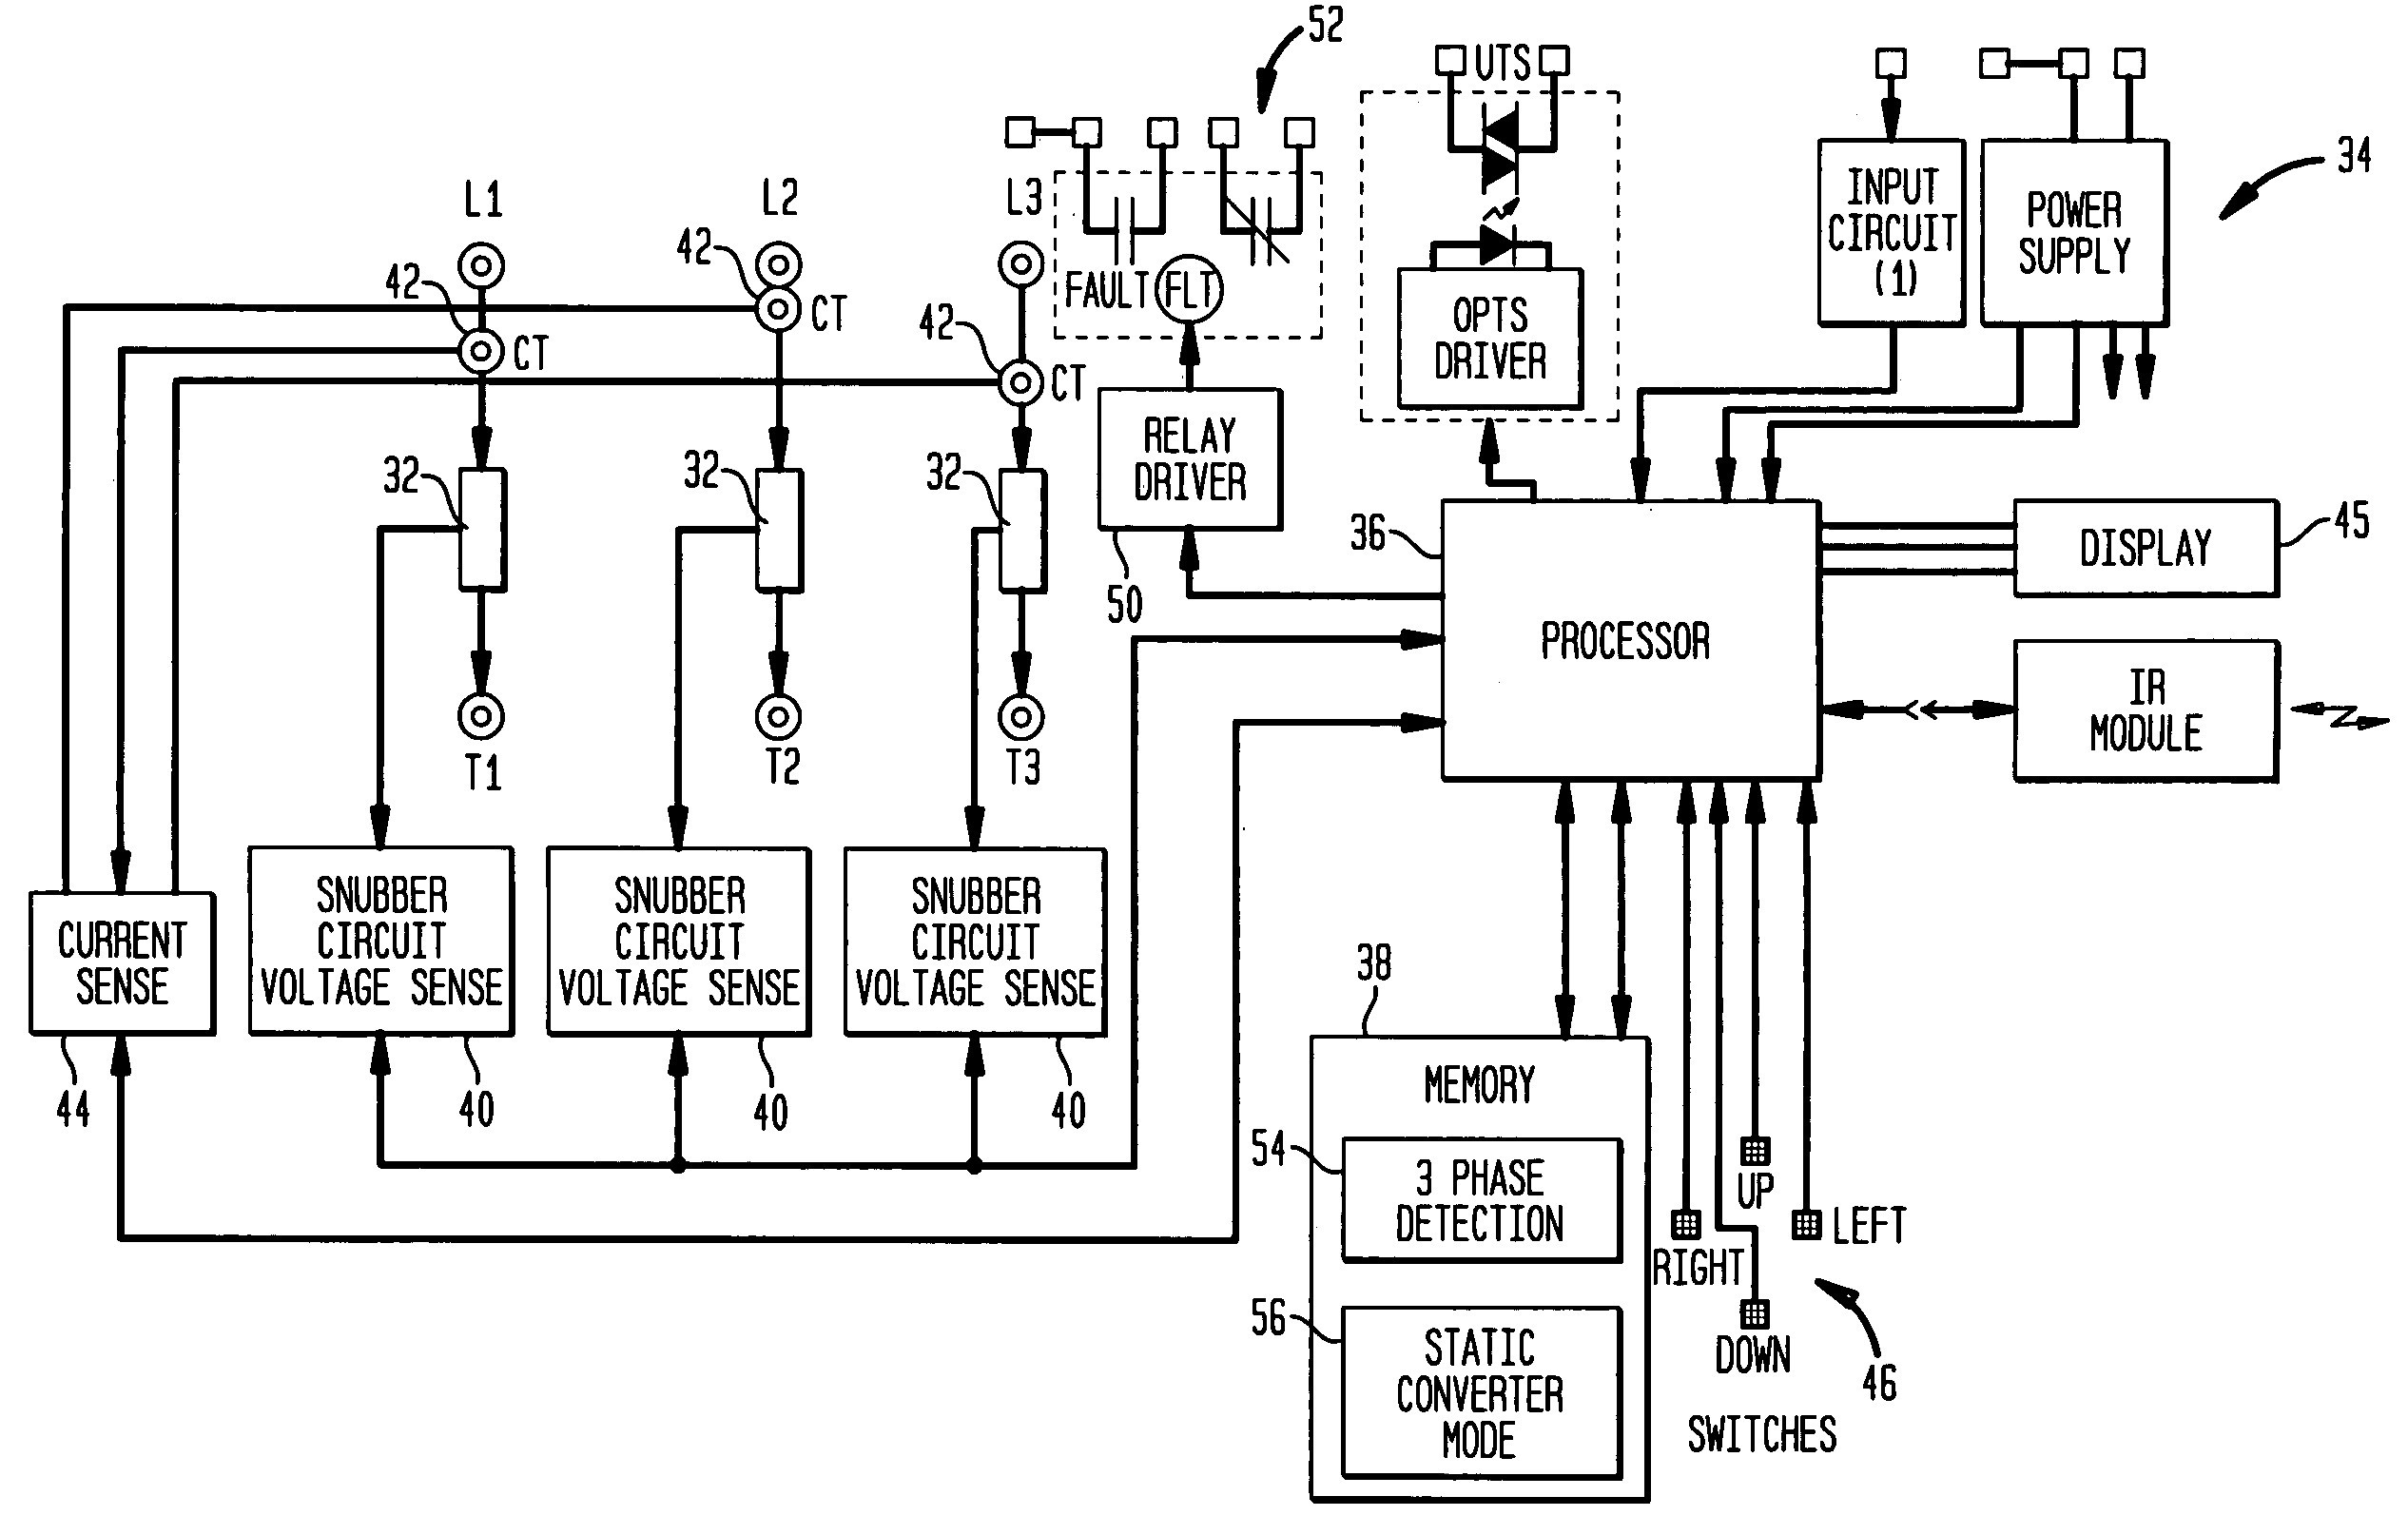 Sie 540 100 Wiring Diagrams | Wiring Diagram  Phase Magnetic Starter Wiring Diagram on motor starter circuit diagram, furnas contactor wiring diagram, 3 phase capacitor wiring diagram, 3 phase electric motor wiring diagram, 3 phase switch wiring diagram, 3 phase panel wiring diagram, 3 phase circuit breaker wiring diagram, 3 phase soft start wiring, 3 phase motor connection diagram, 3 phase transformer wiring diagram, weg 3 phase wiring diagram, 3 phase thermal overload wiring diagram, 3 phase pump wiring diagram, 2 phase motor wiring diagram, 3 phase 6 wire motor wiring diagram, three-phase contactor wiring diagram, 3 phase wiring 480,